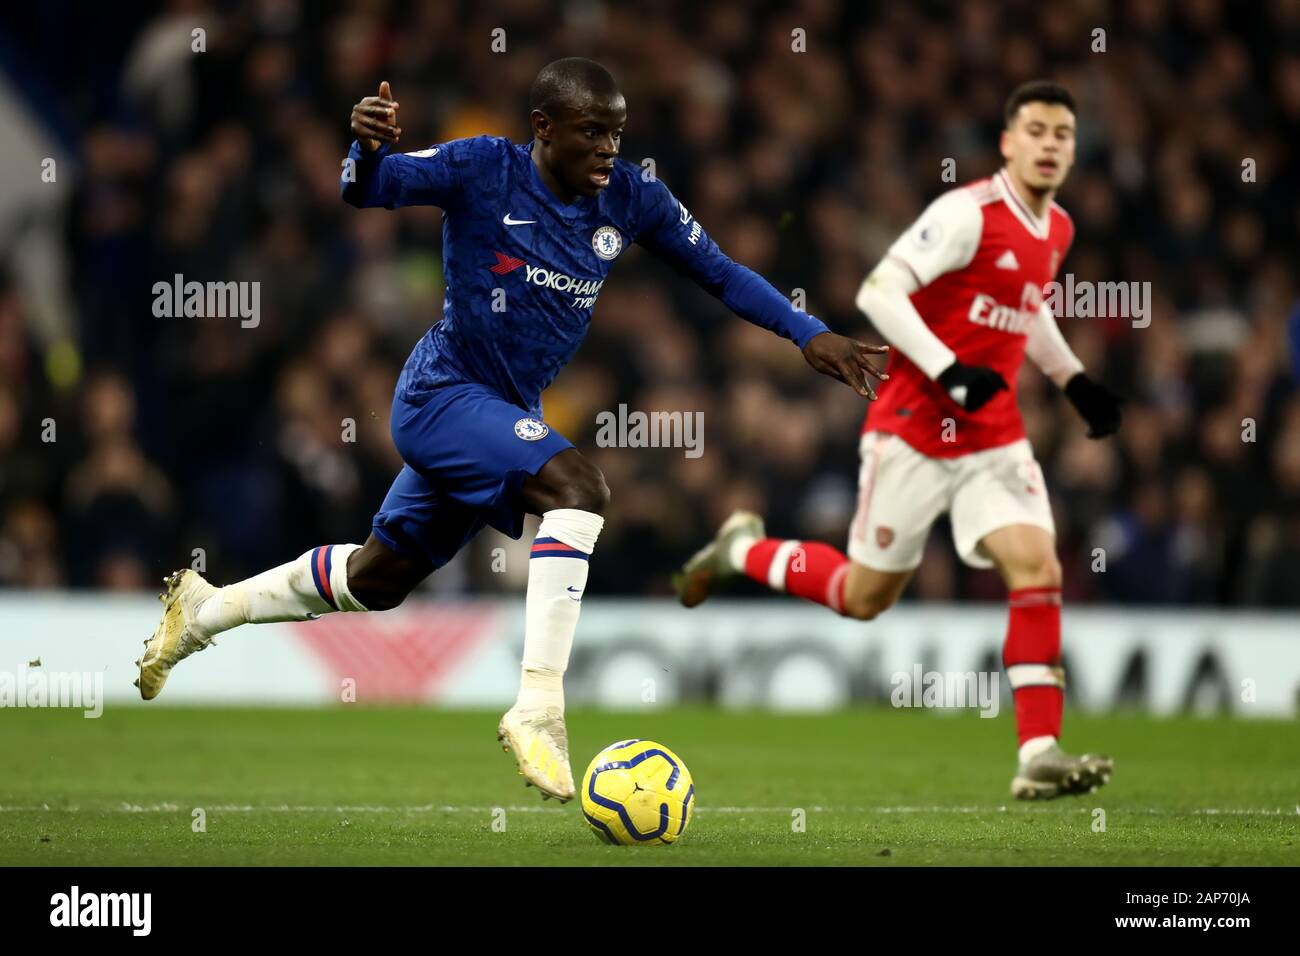 Stamford Bridge, London, UK. 21st Jan, 2020. English Premier League Football, Chelsea versus Arsenal; Ngolo Kante of Chelsea - Strictly Editorial Use Only. No use with unauthorized audio, video, data, fixture lists, club/league logos or 'live' services. Online in-match use limited to 120 images, no video emulation. No use in betting, games or single club/league/player publications Credit: Action Plus Sports/Alamy Live News Stock Photo